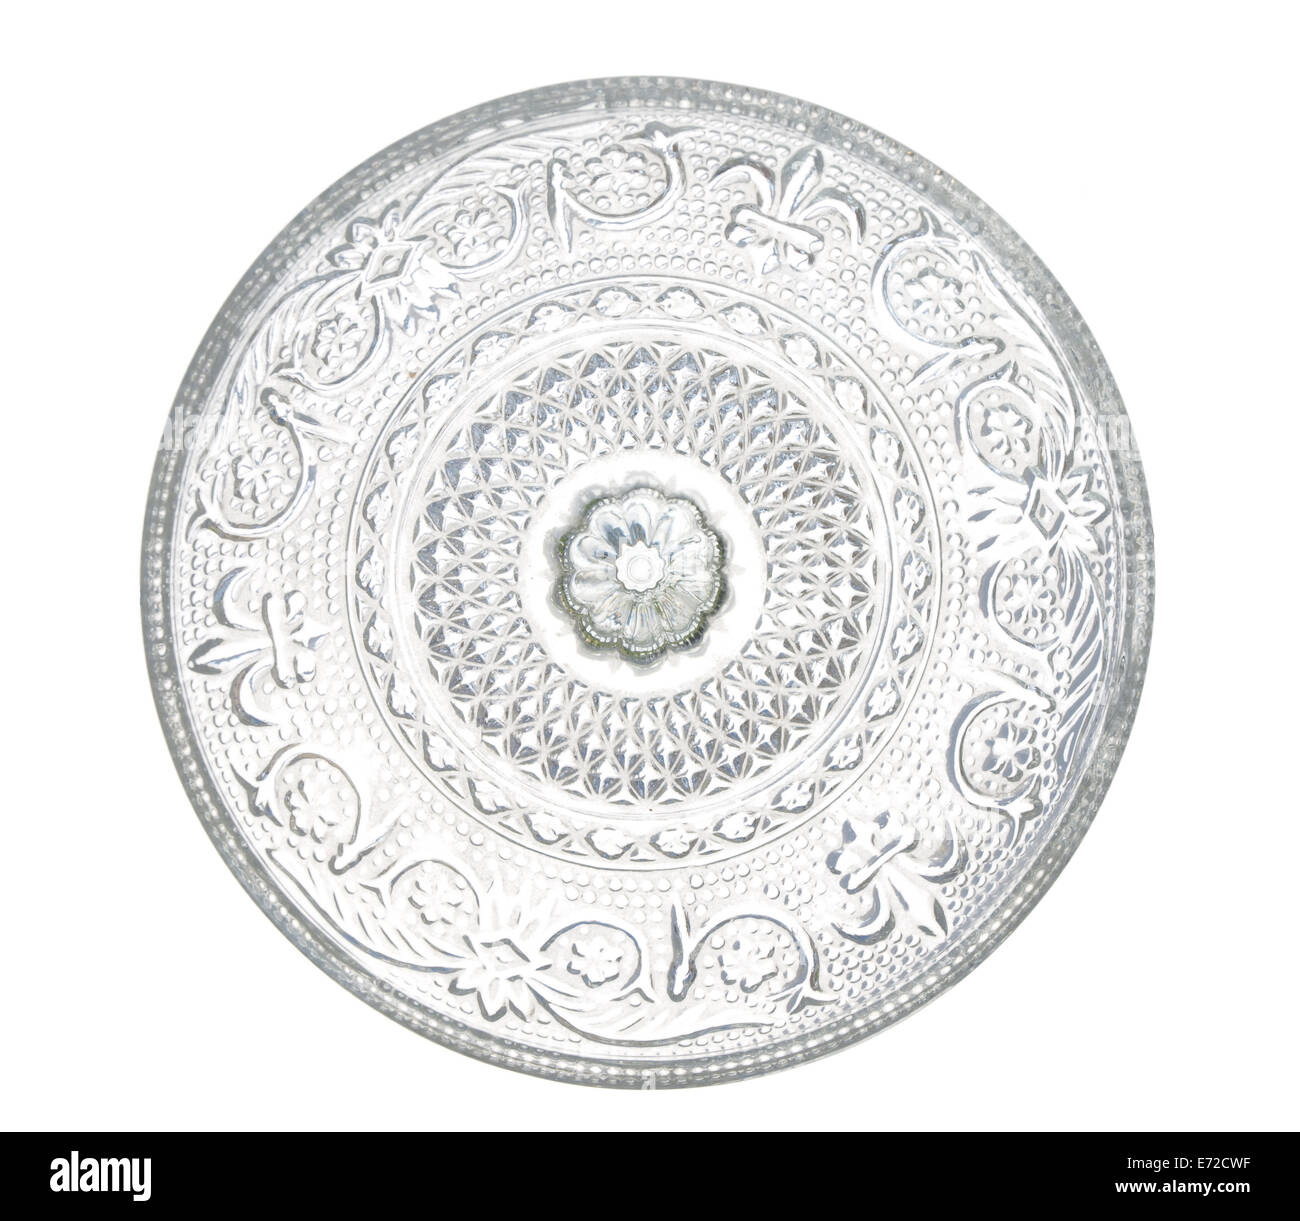 plate made of transparent glass with patterns, isolated on white background. - Stock Image